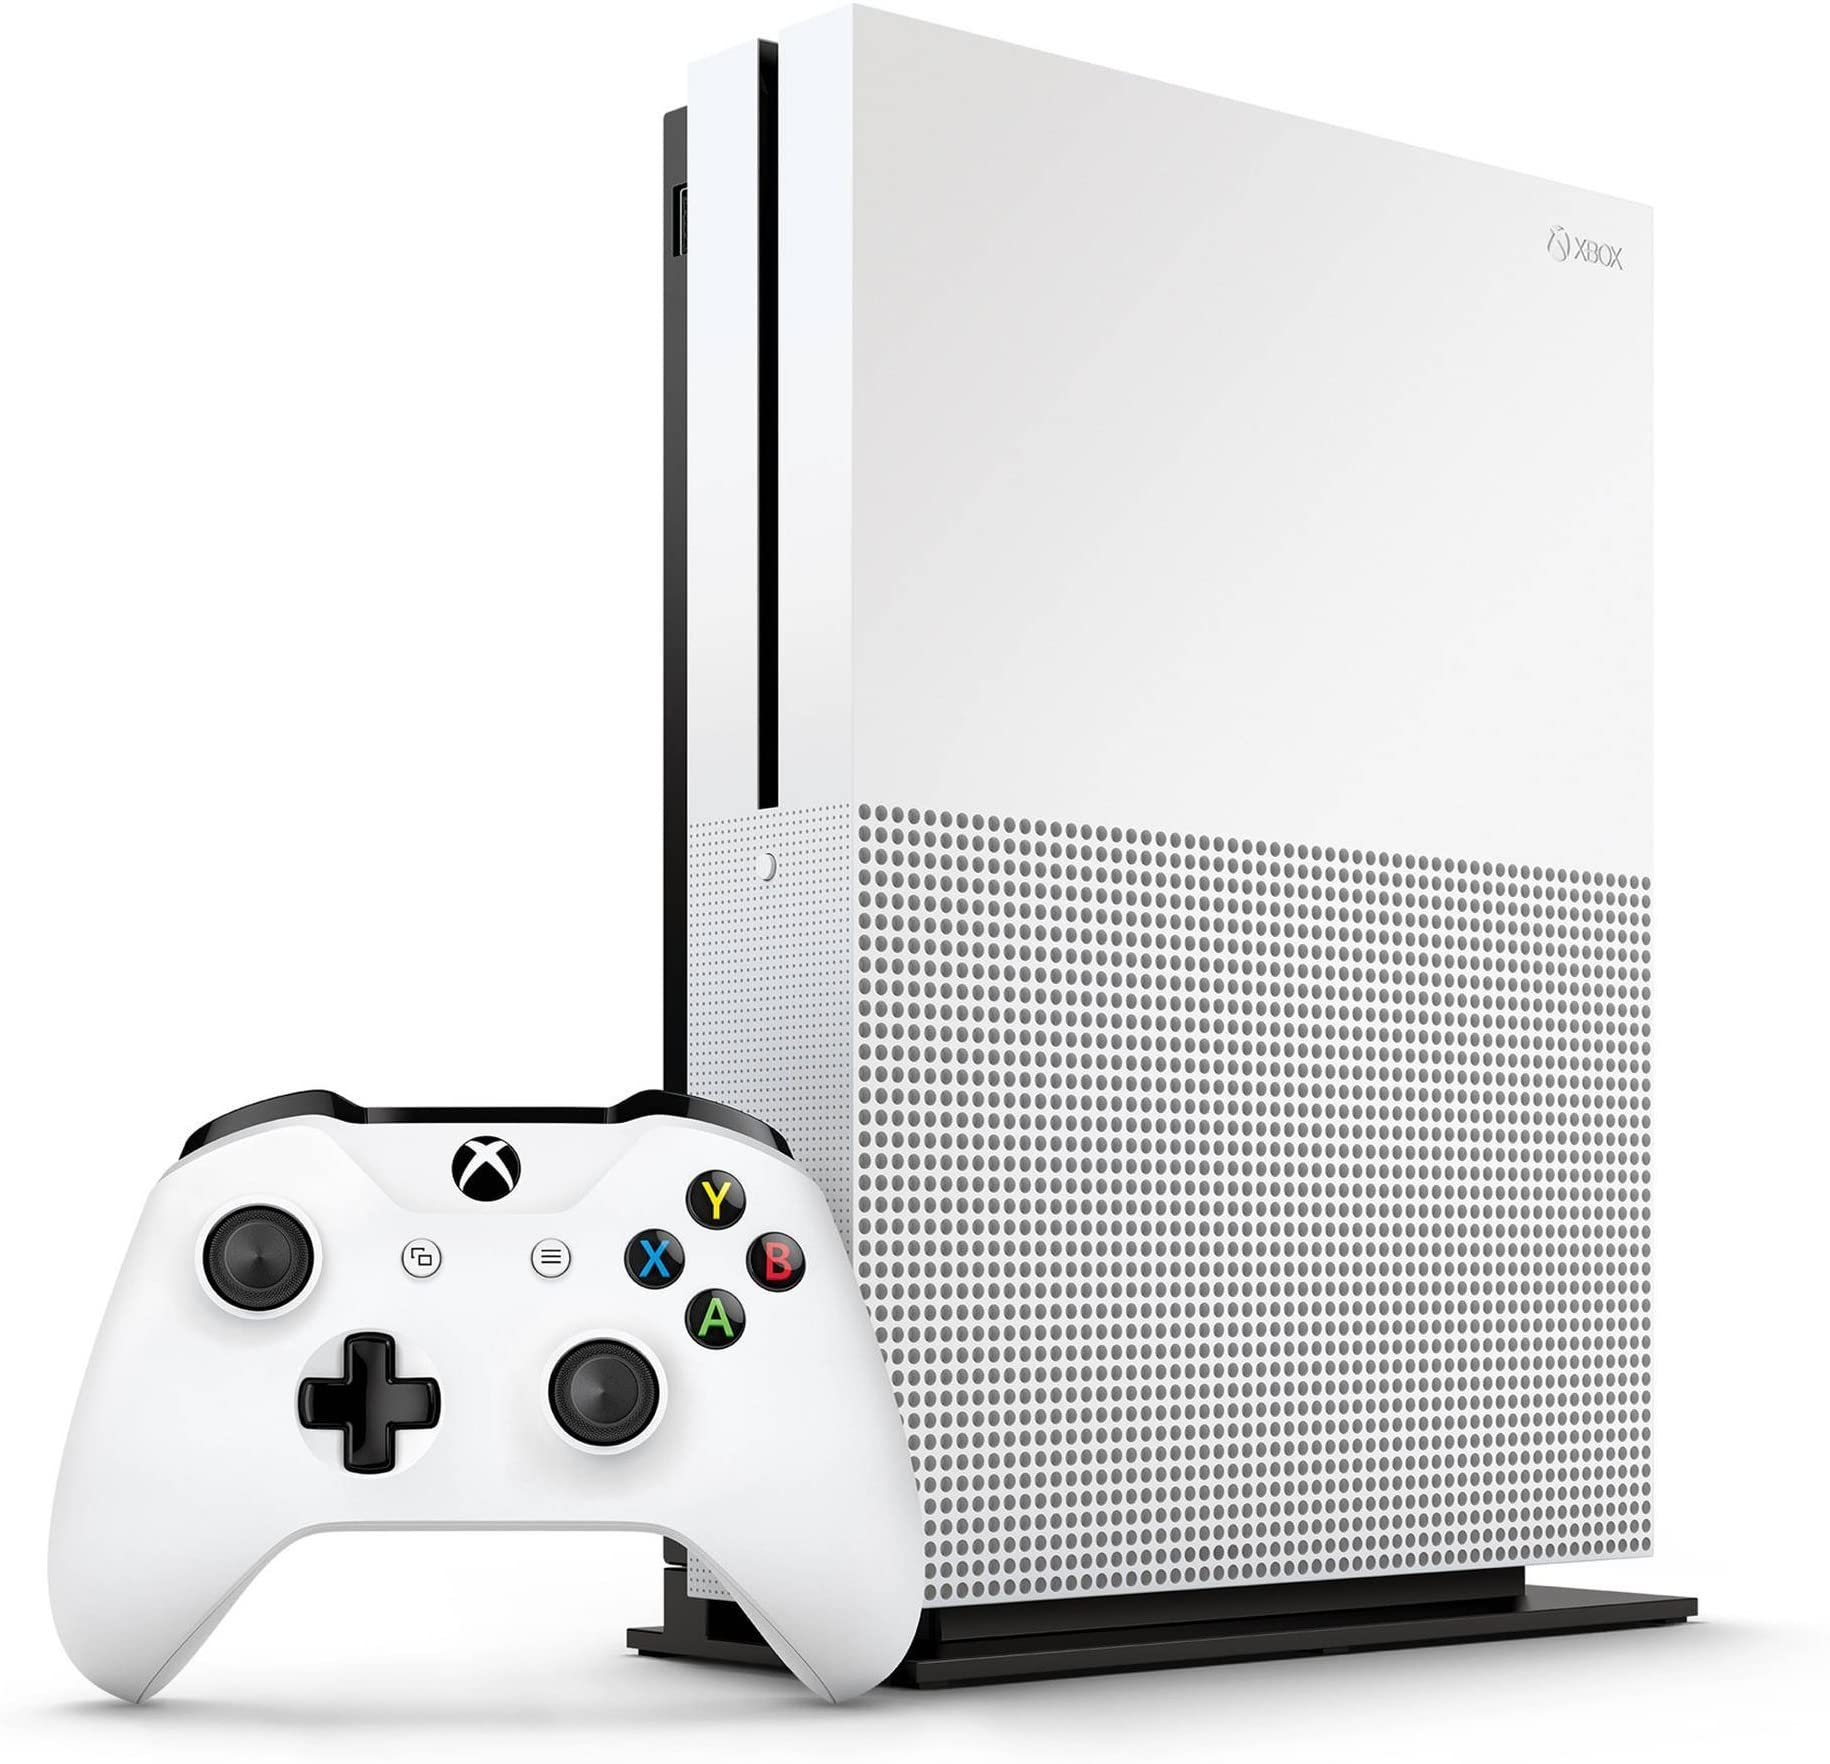 Xbox One S 500 Gb Console (Certified Refurbished) [Video Game] by Microsoft